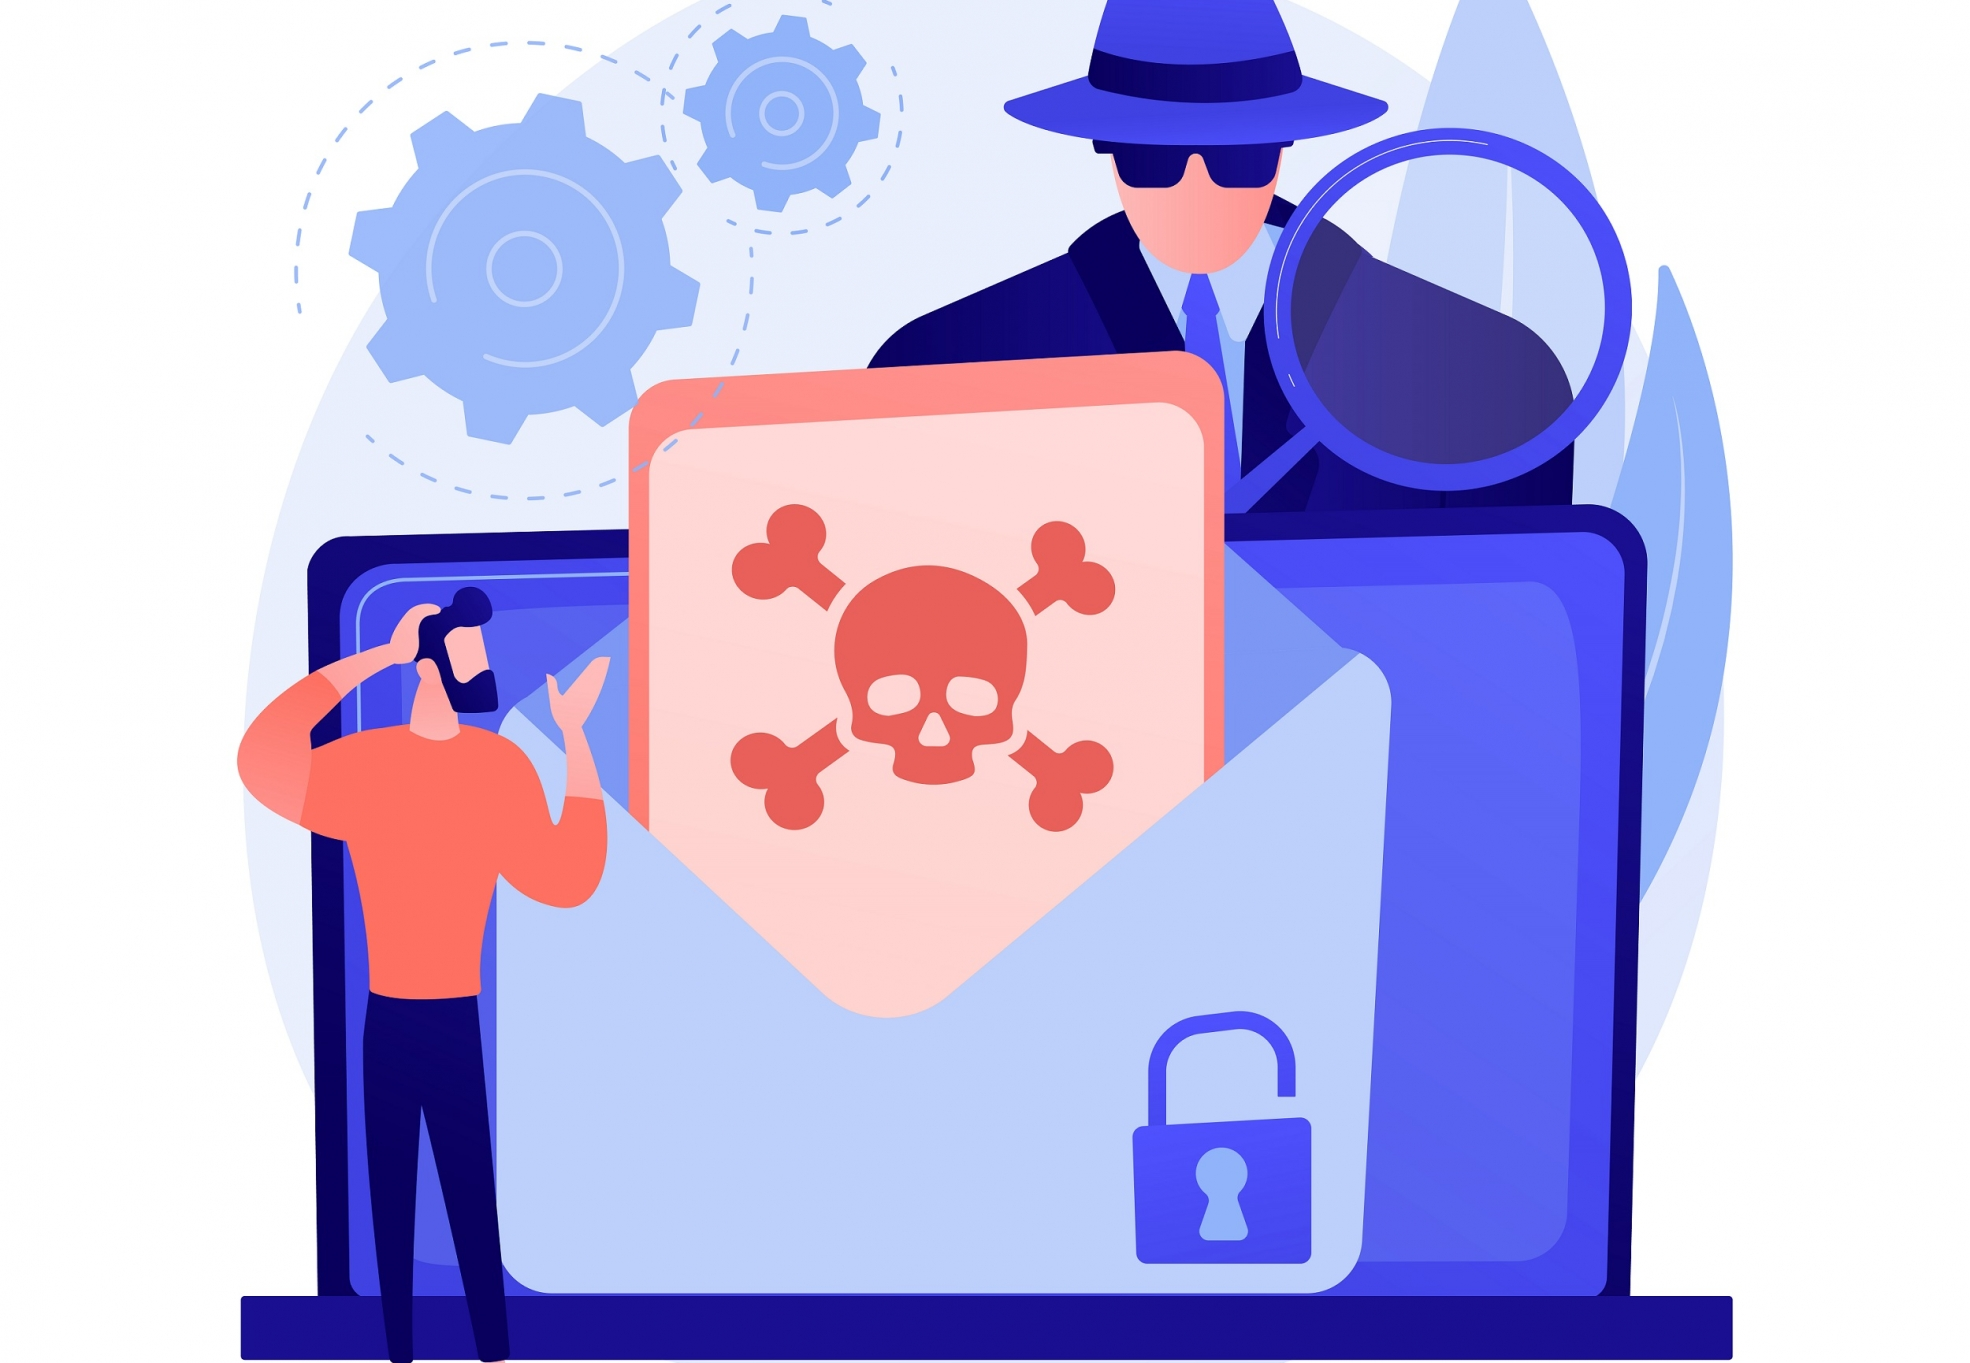 Malware abstract concept vector illustration. Malicious software, computer virus, malware program, spyware development, online antivirus security and protection, cyber attack abstract metaphor.